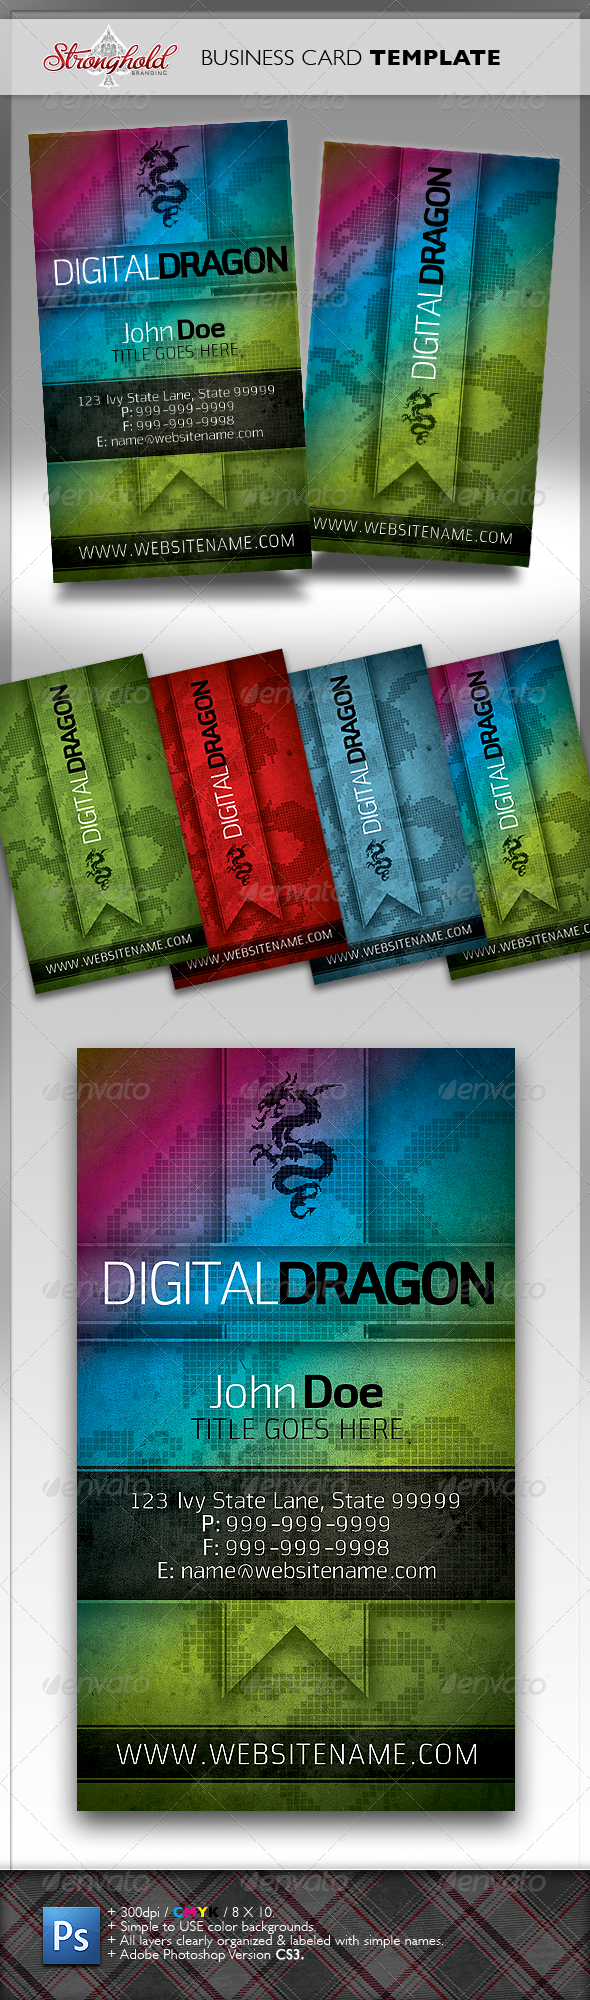 GraphicRiver Digital Dragon Business Card Template 1449058